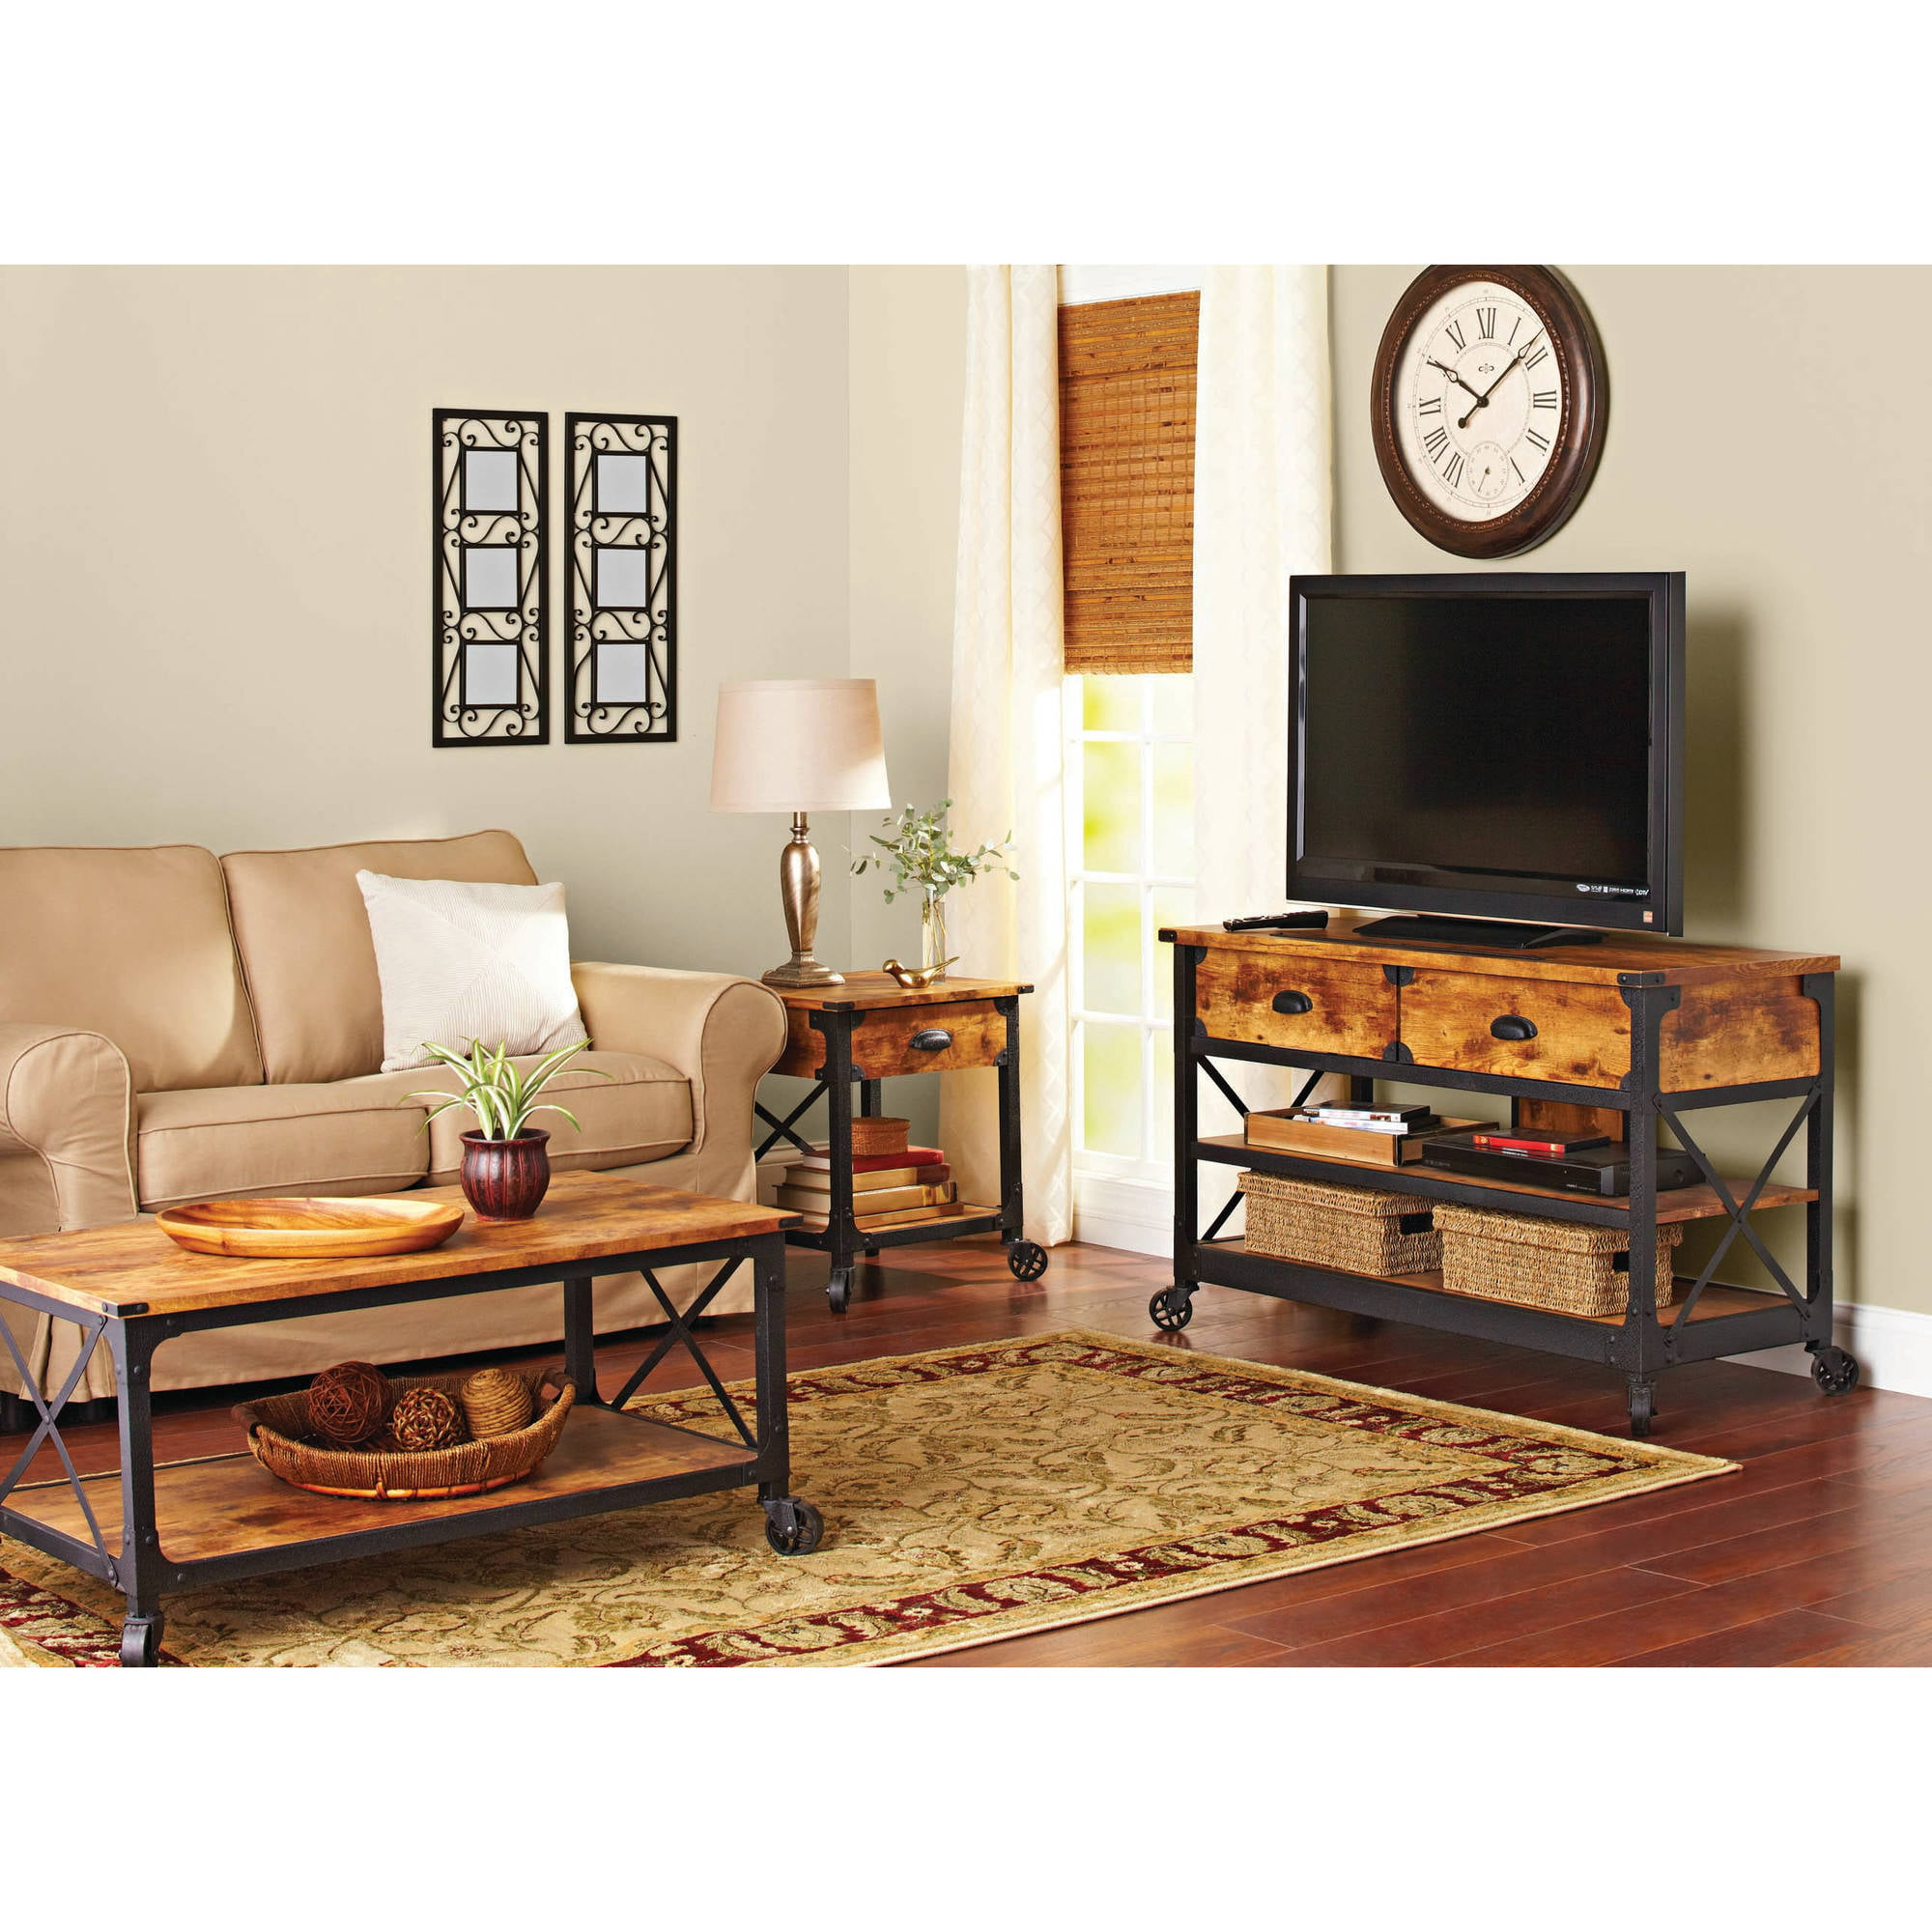 Better Homes and Gardens Rustic Country Living Room Set Walmartcom